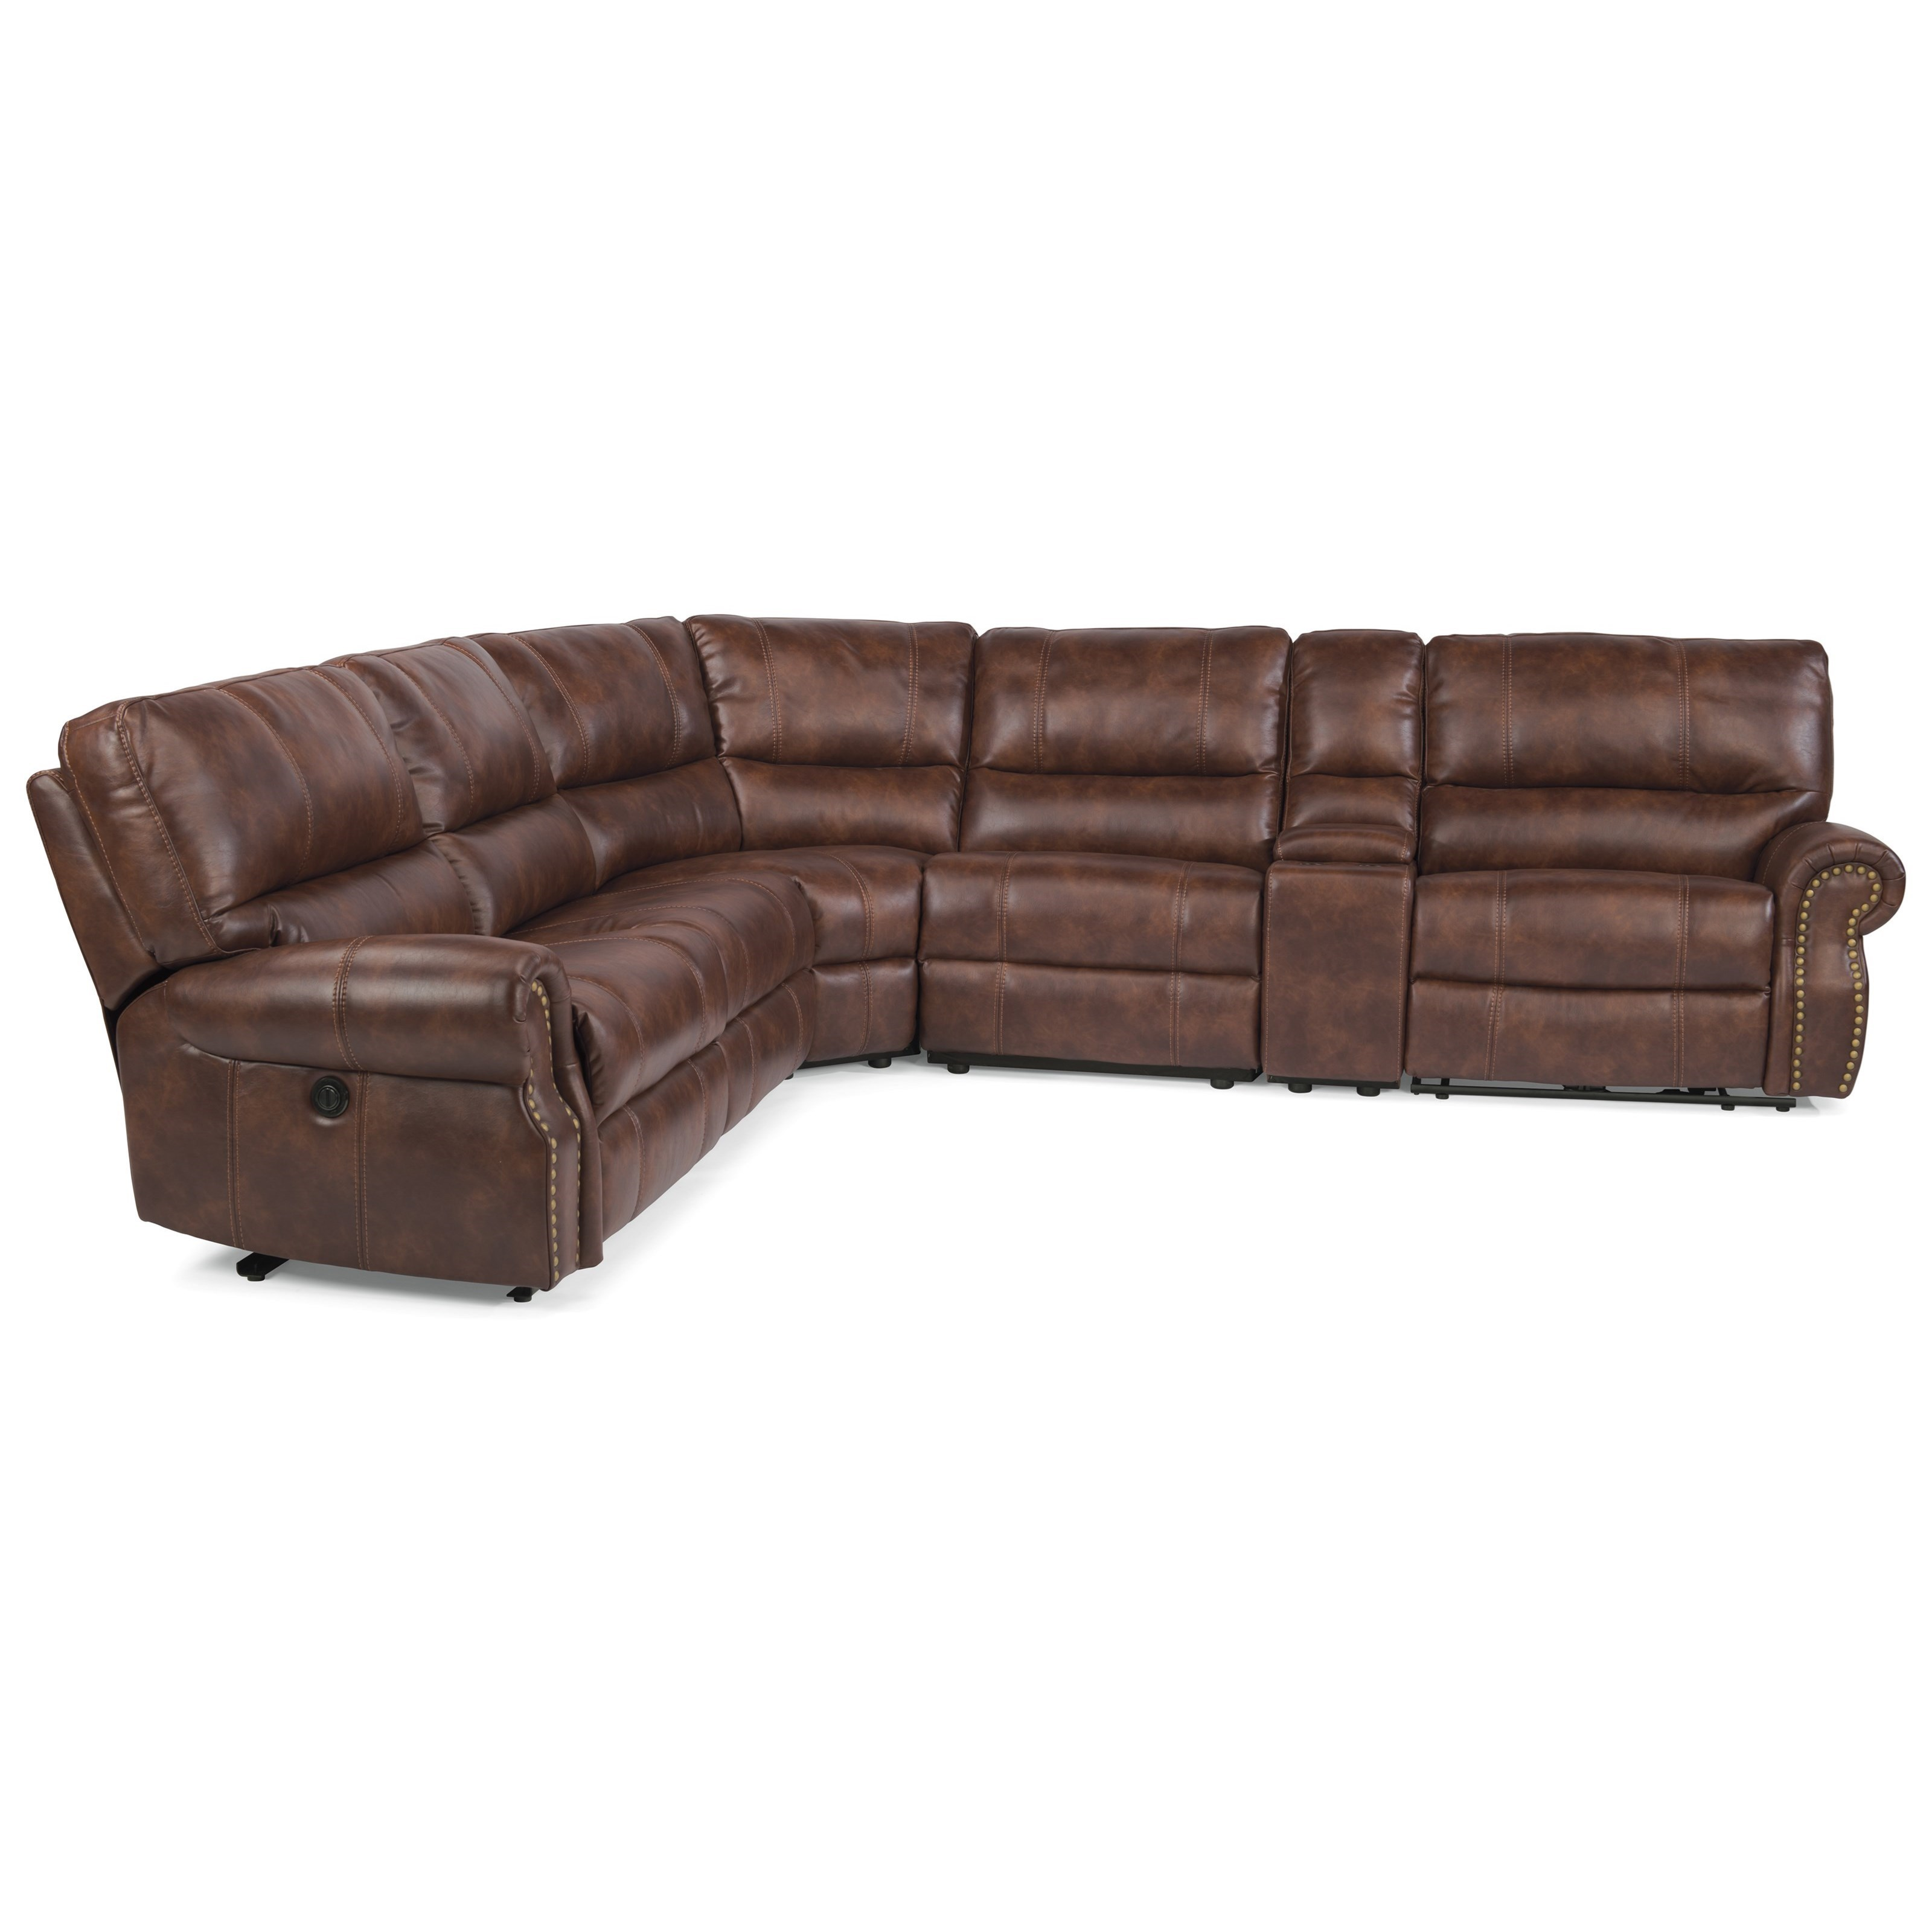 Flexsteel Latitudes Carlton Traditional L Shaped 6 Piece Sectional With  Storage Console And